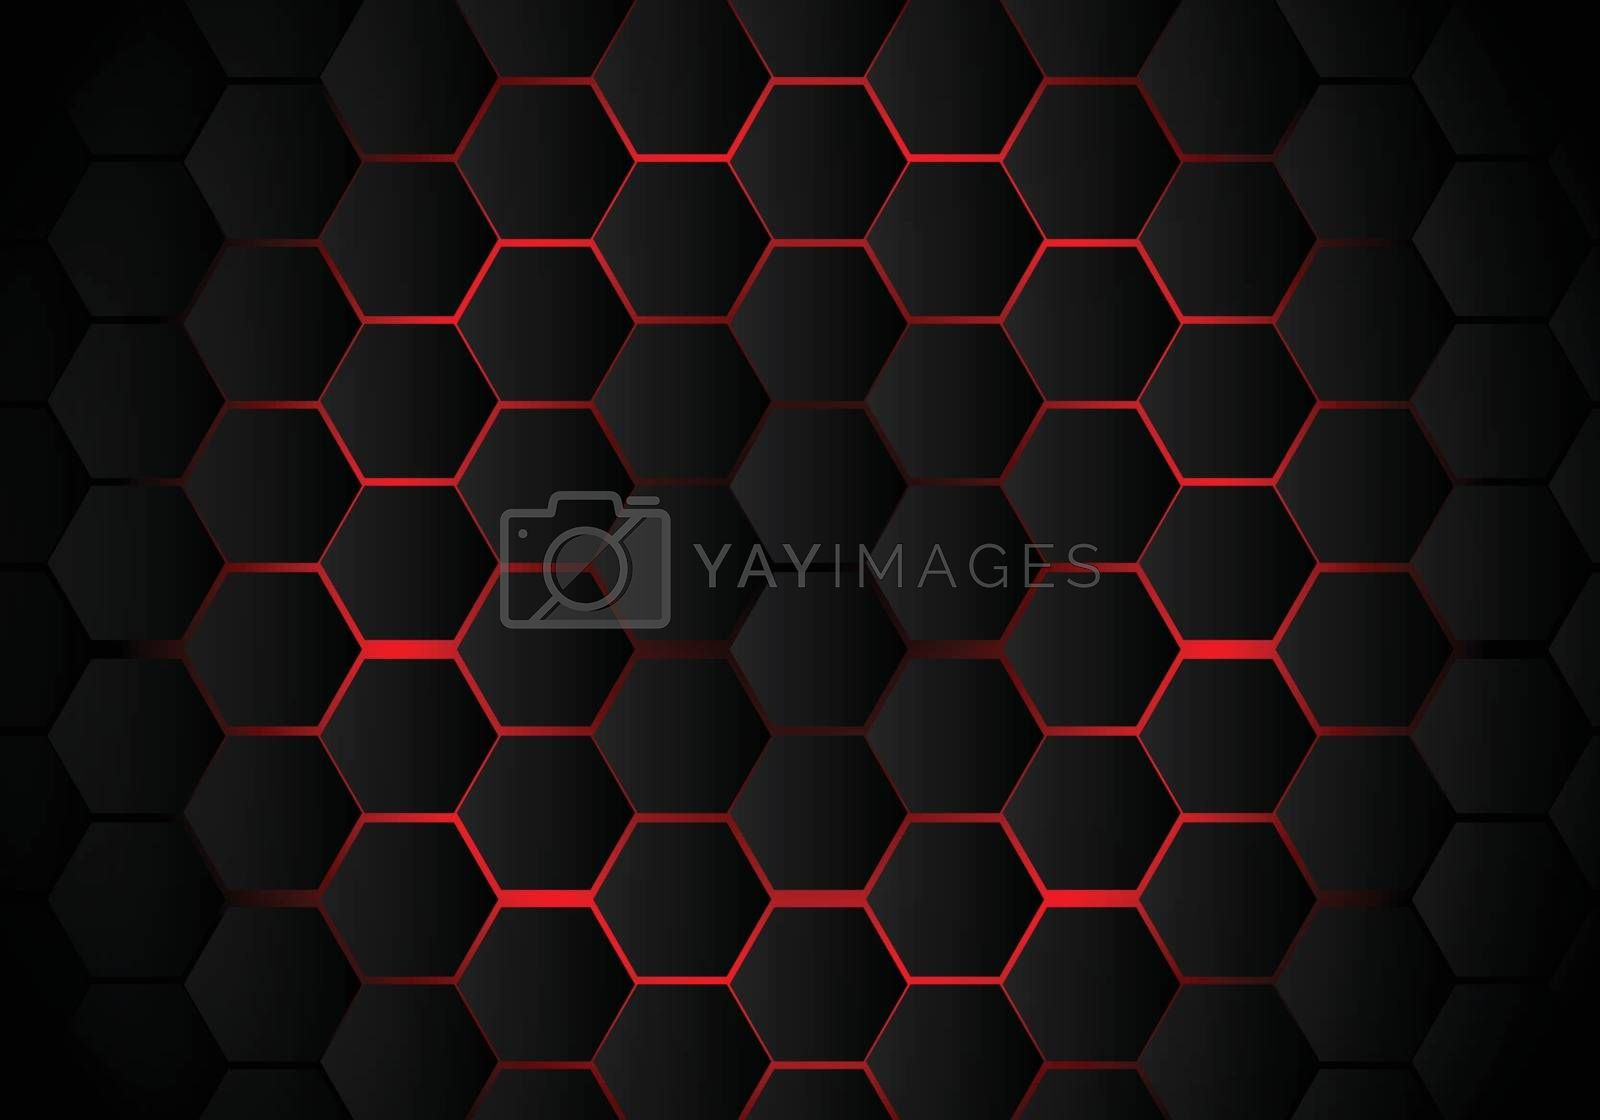 Abstract black hexagon pattern on red neon background technology style. Honeycomb. Vector illustration